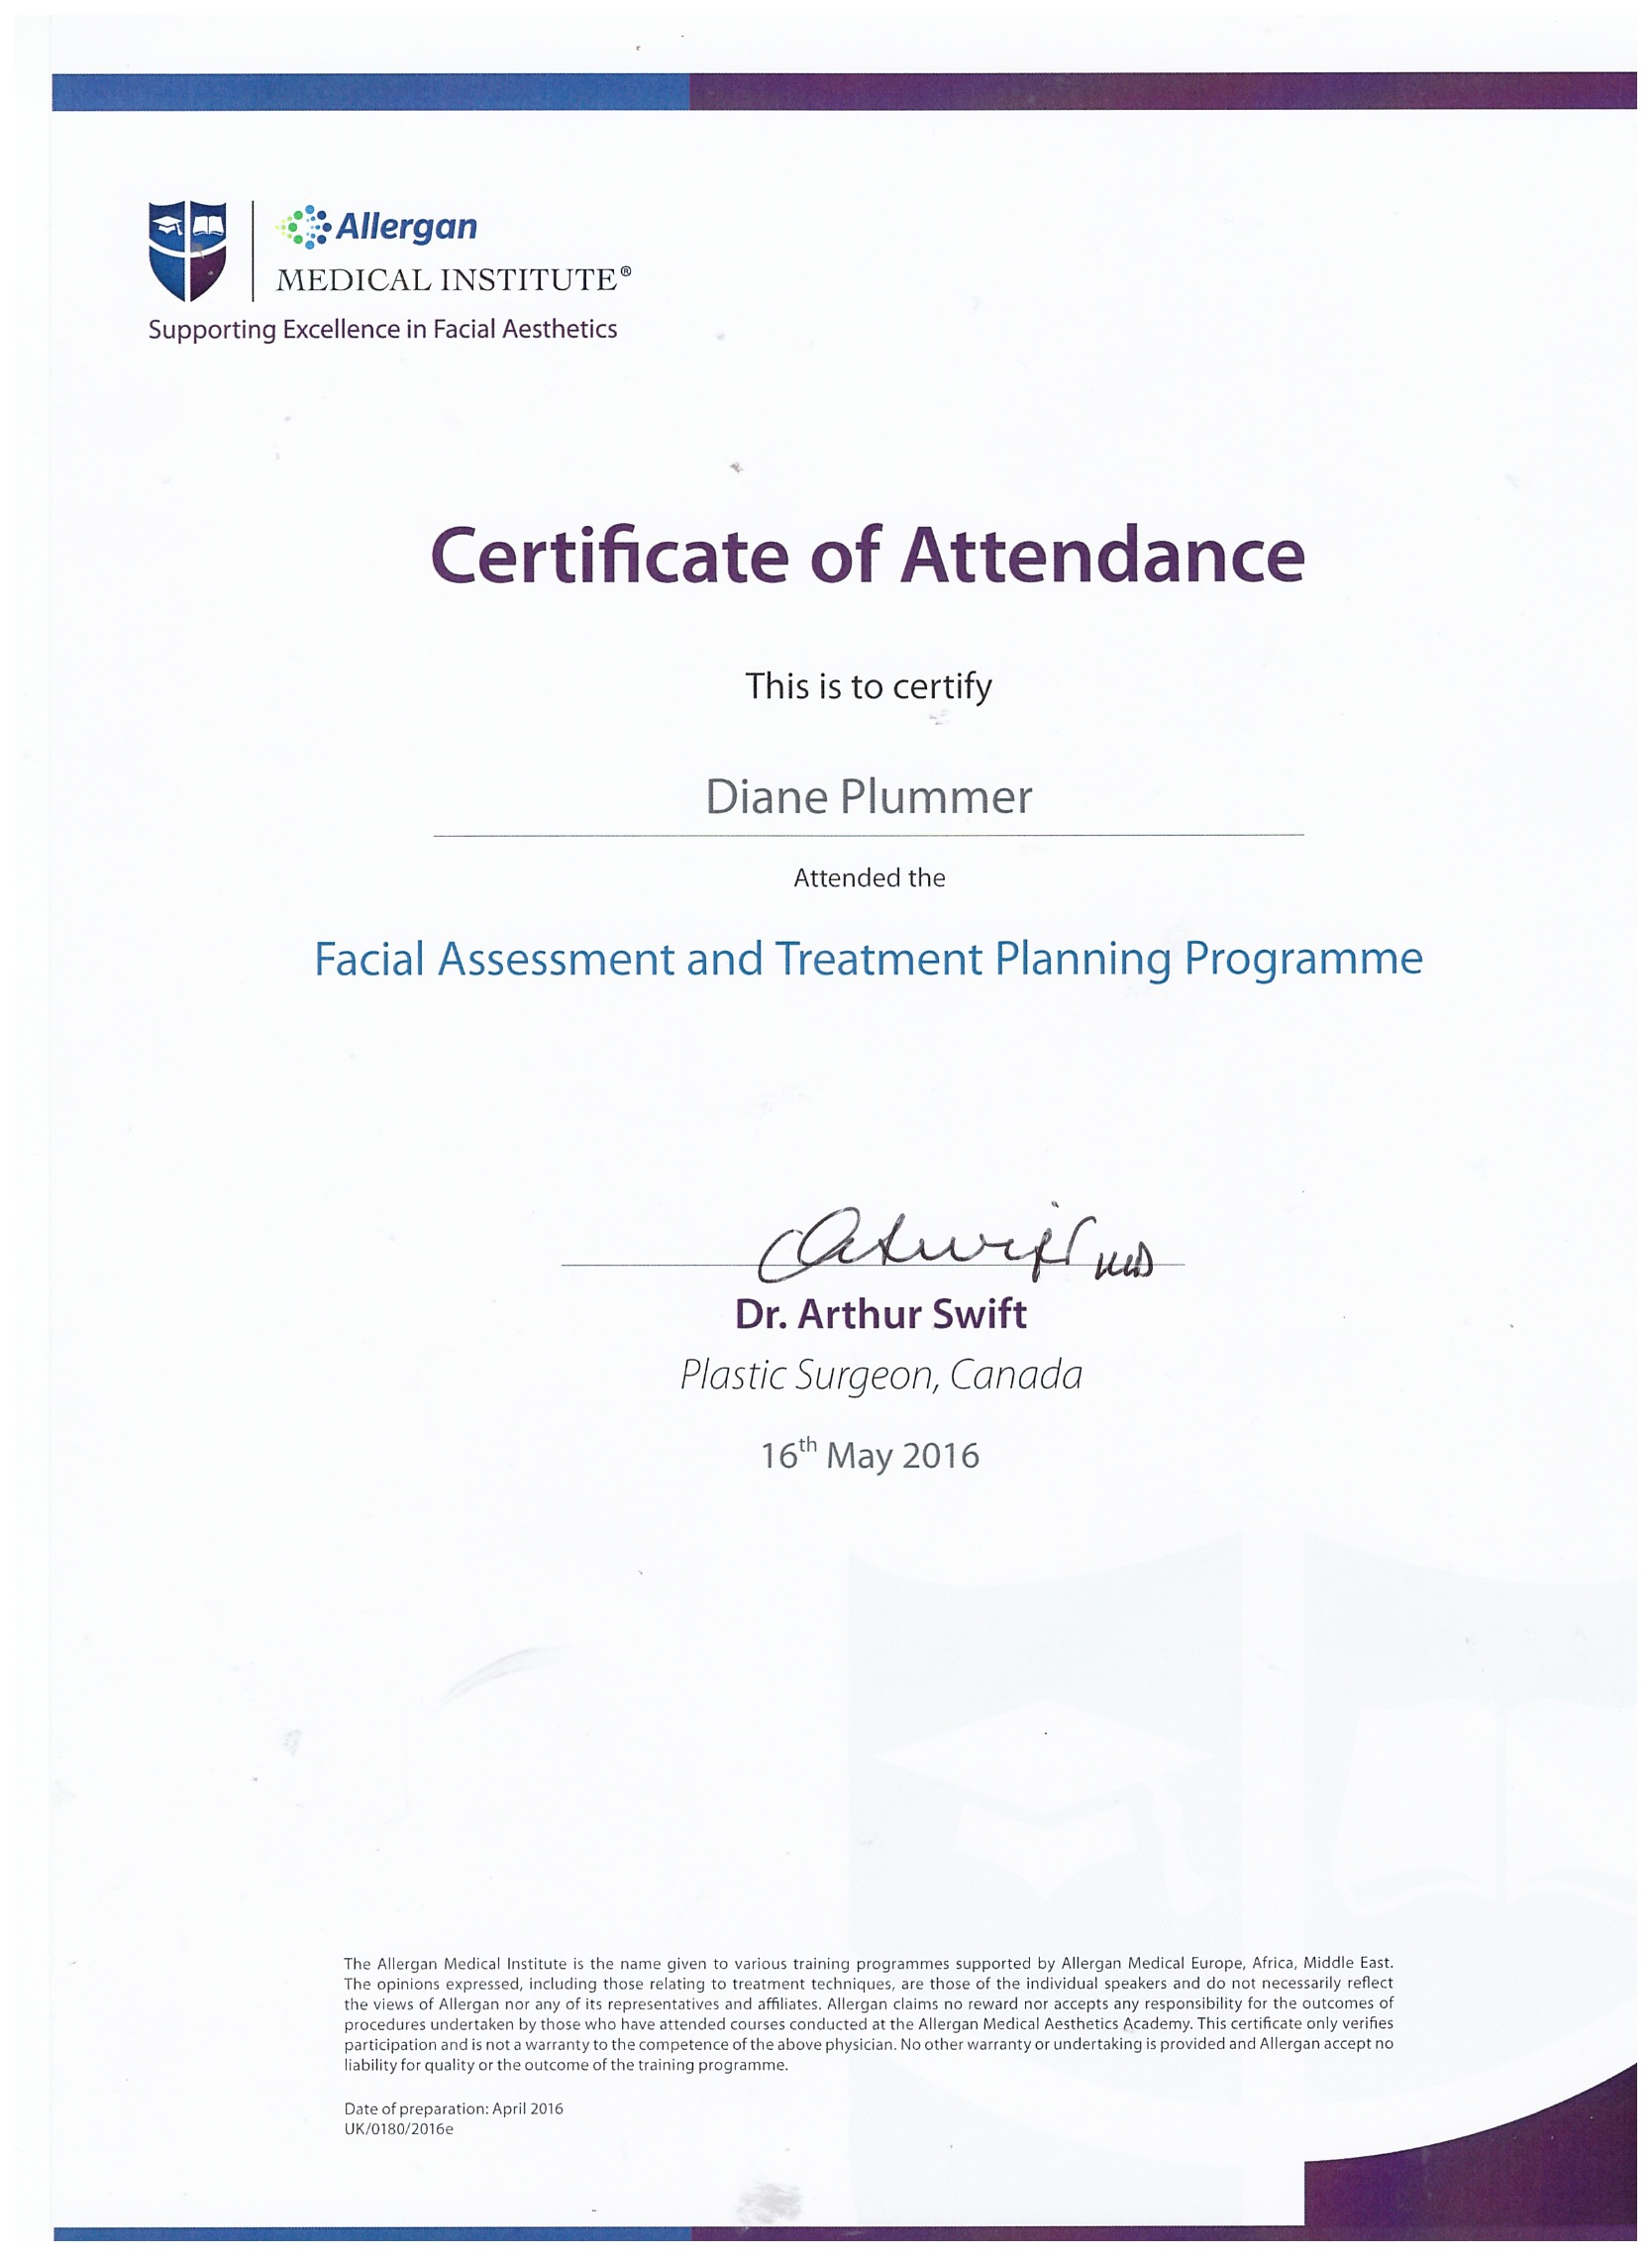 Allergan Medical Institute - Facial Assessment and treatment Planning Programme